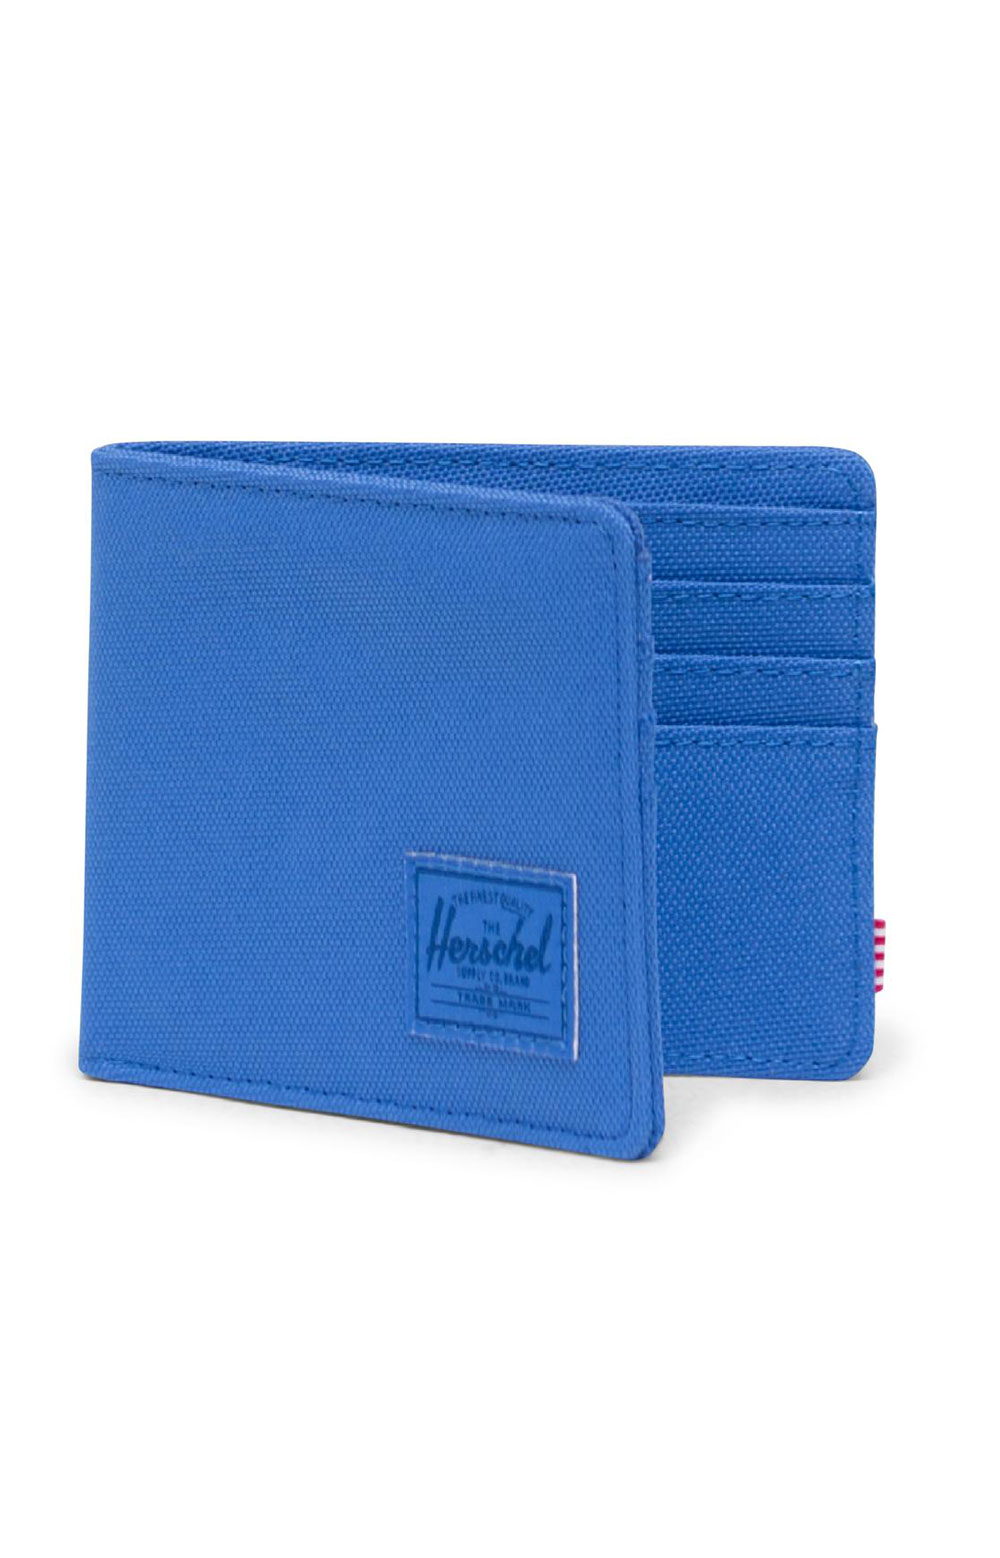 Roy Wallet - Amparo Blue/Black 2